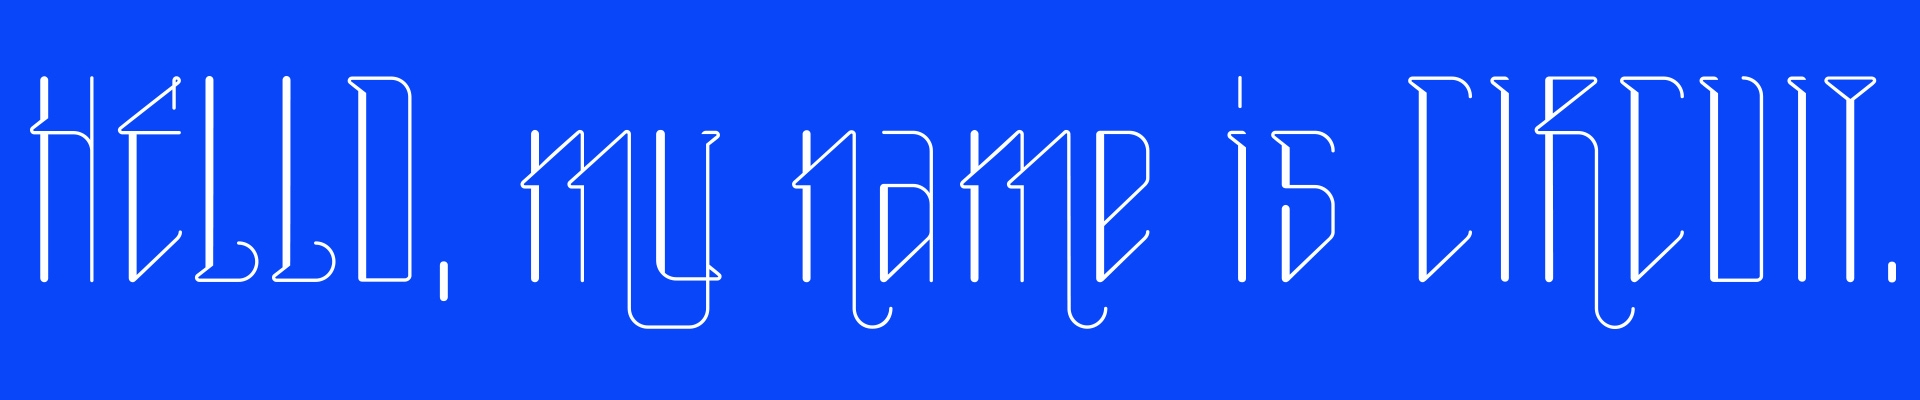 Martin Gnadt — Kommunikationsdesign type